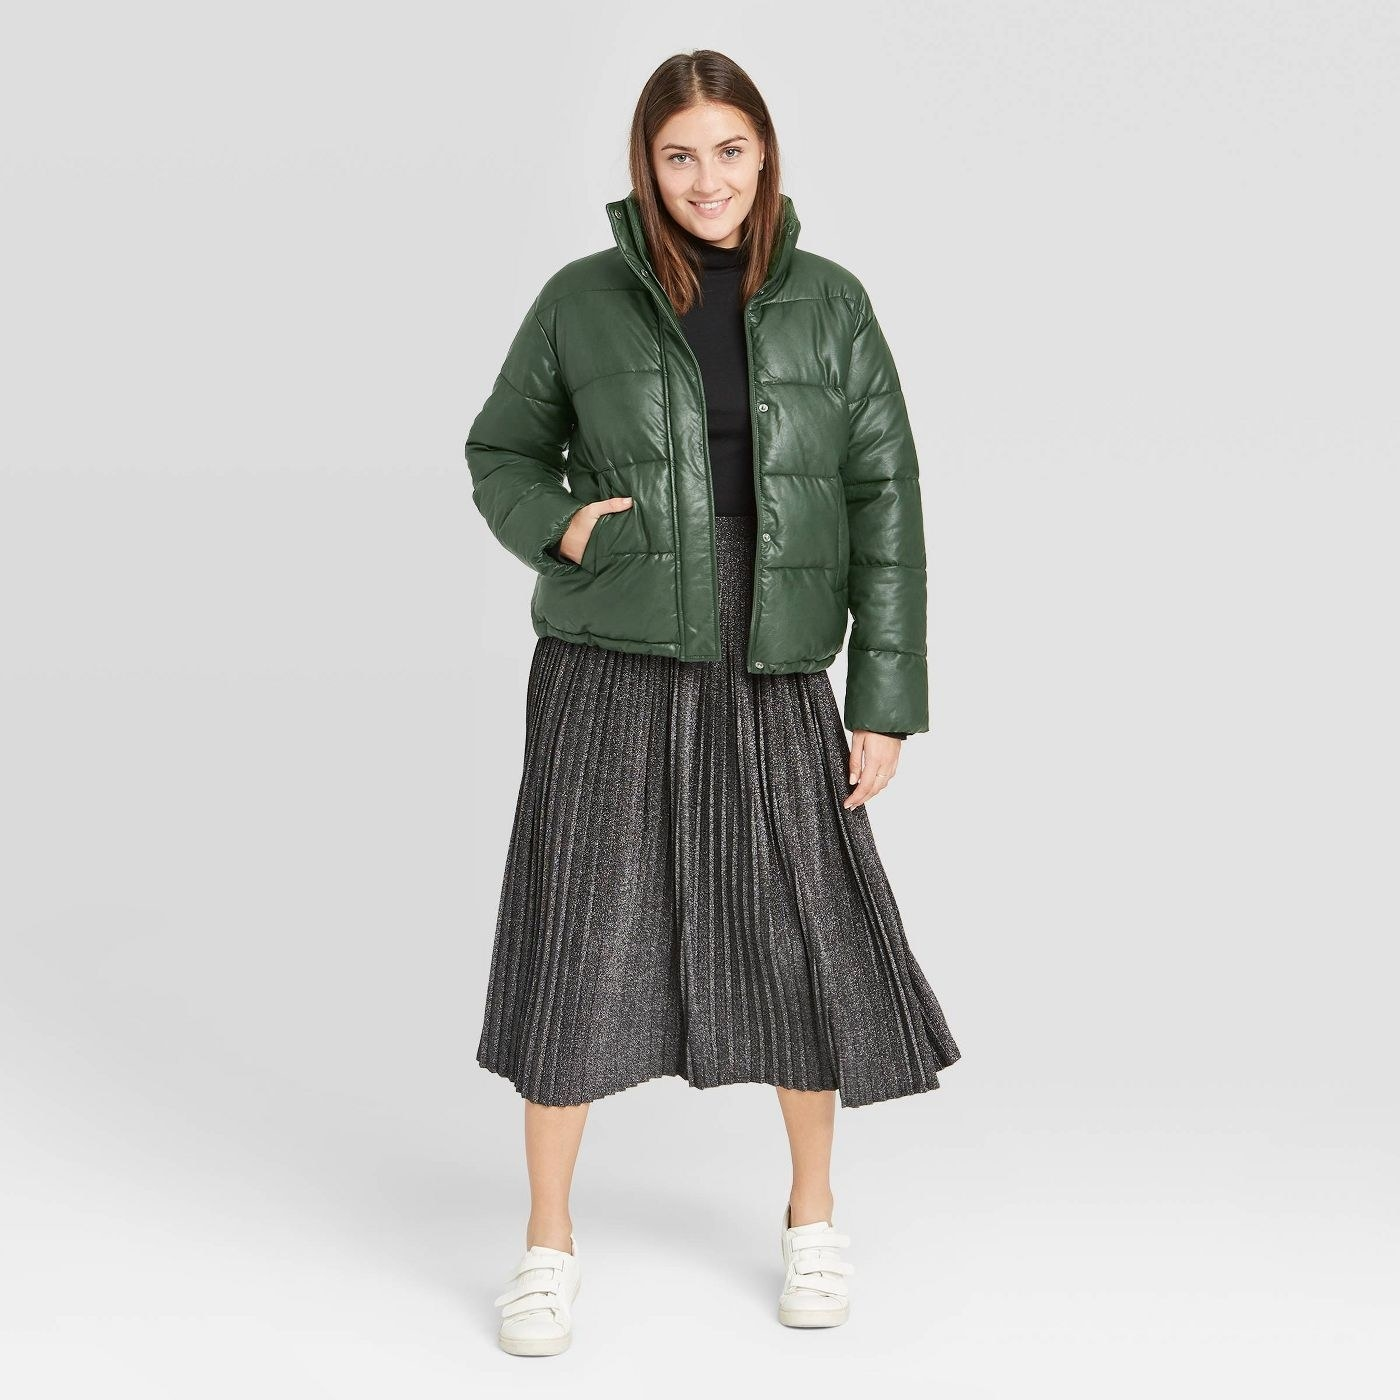 Model in green leather puffer and black skirt